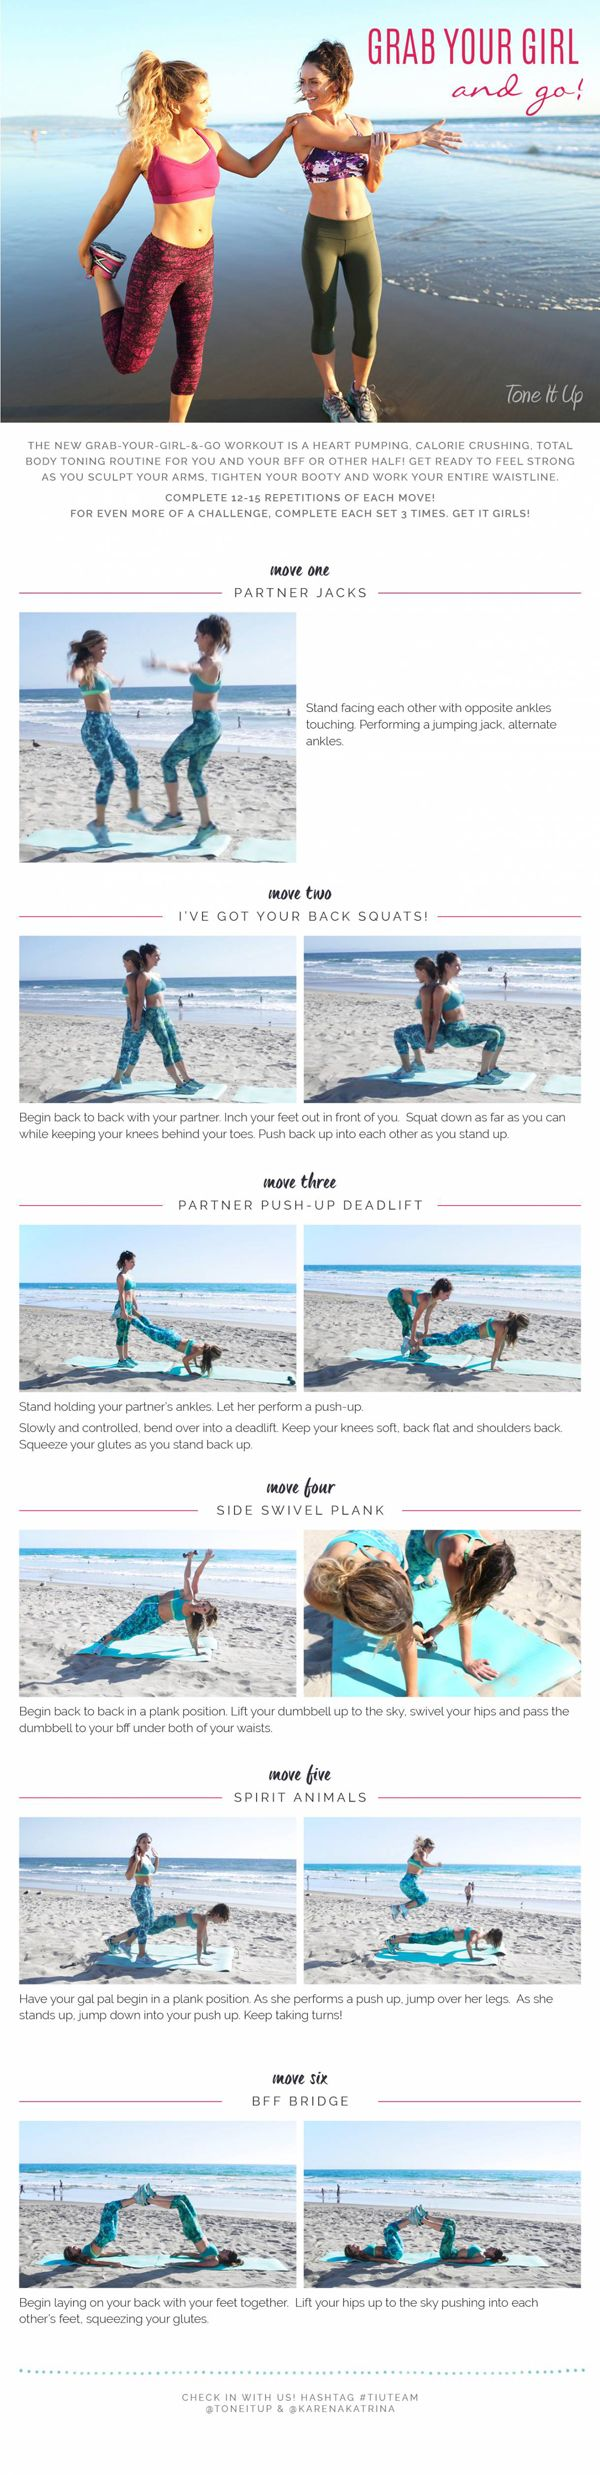 Pull up this workout on your phone the next time you head to the gym with your bestie!